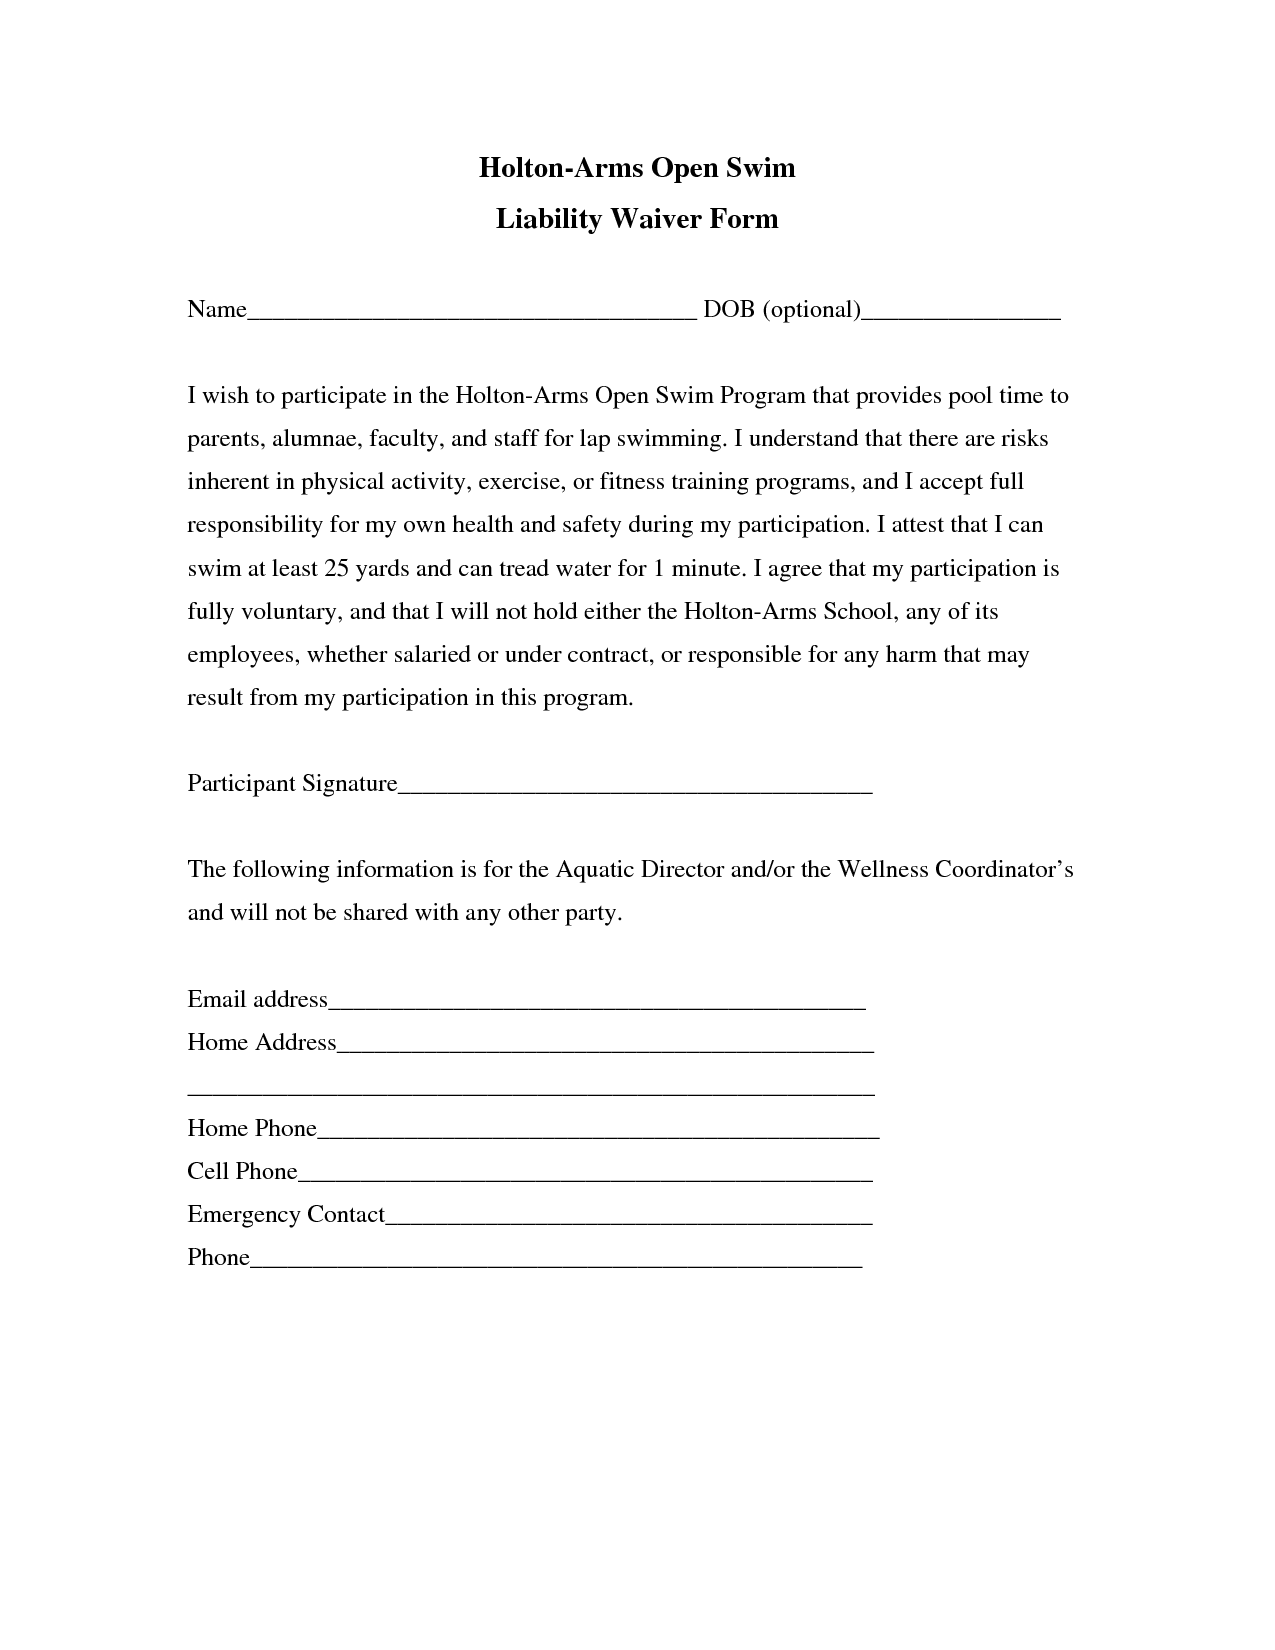 Liability Insurance: Liability Insurance Waiver Template   Liability  Release Form Template Intended Free Liability Waiver